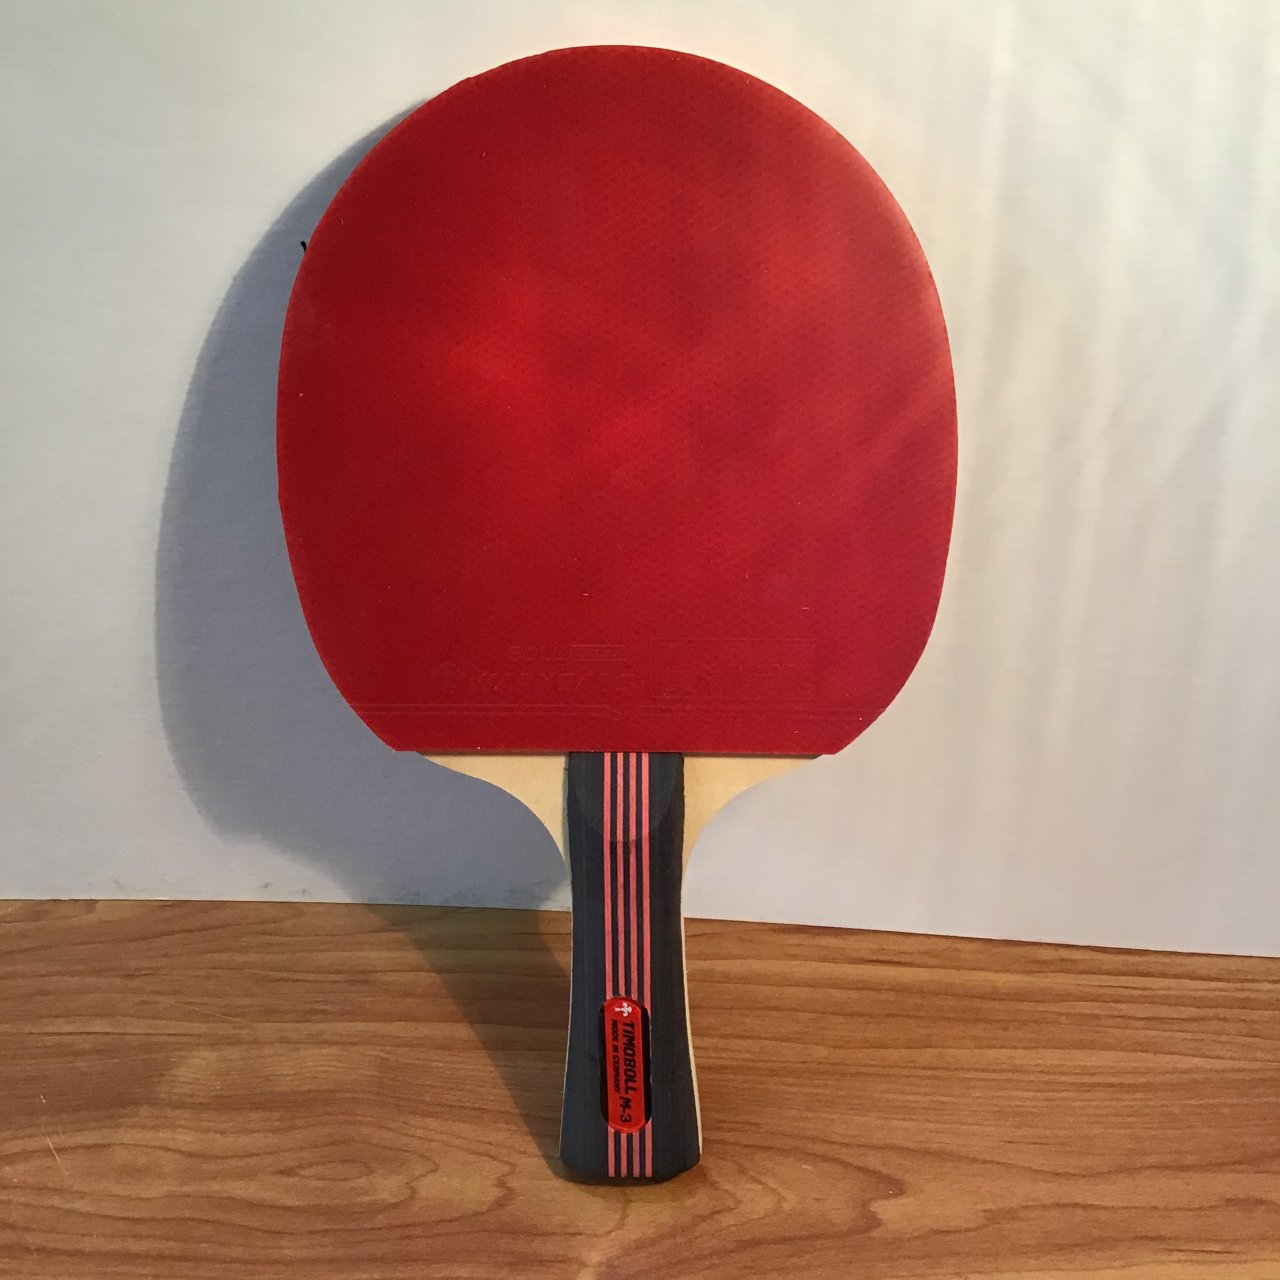 Boll Table Tennis Racket And Case